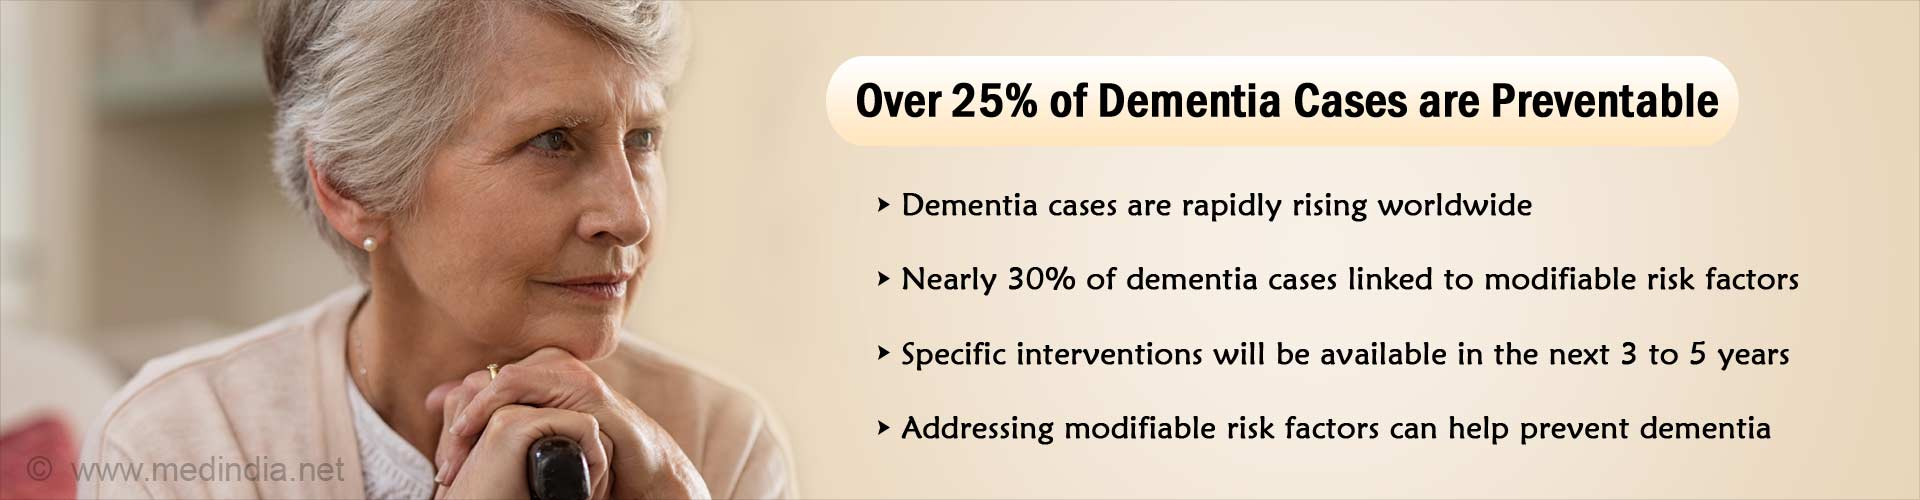 Global Efforts Needed to Control Rising Incidence of Dementia